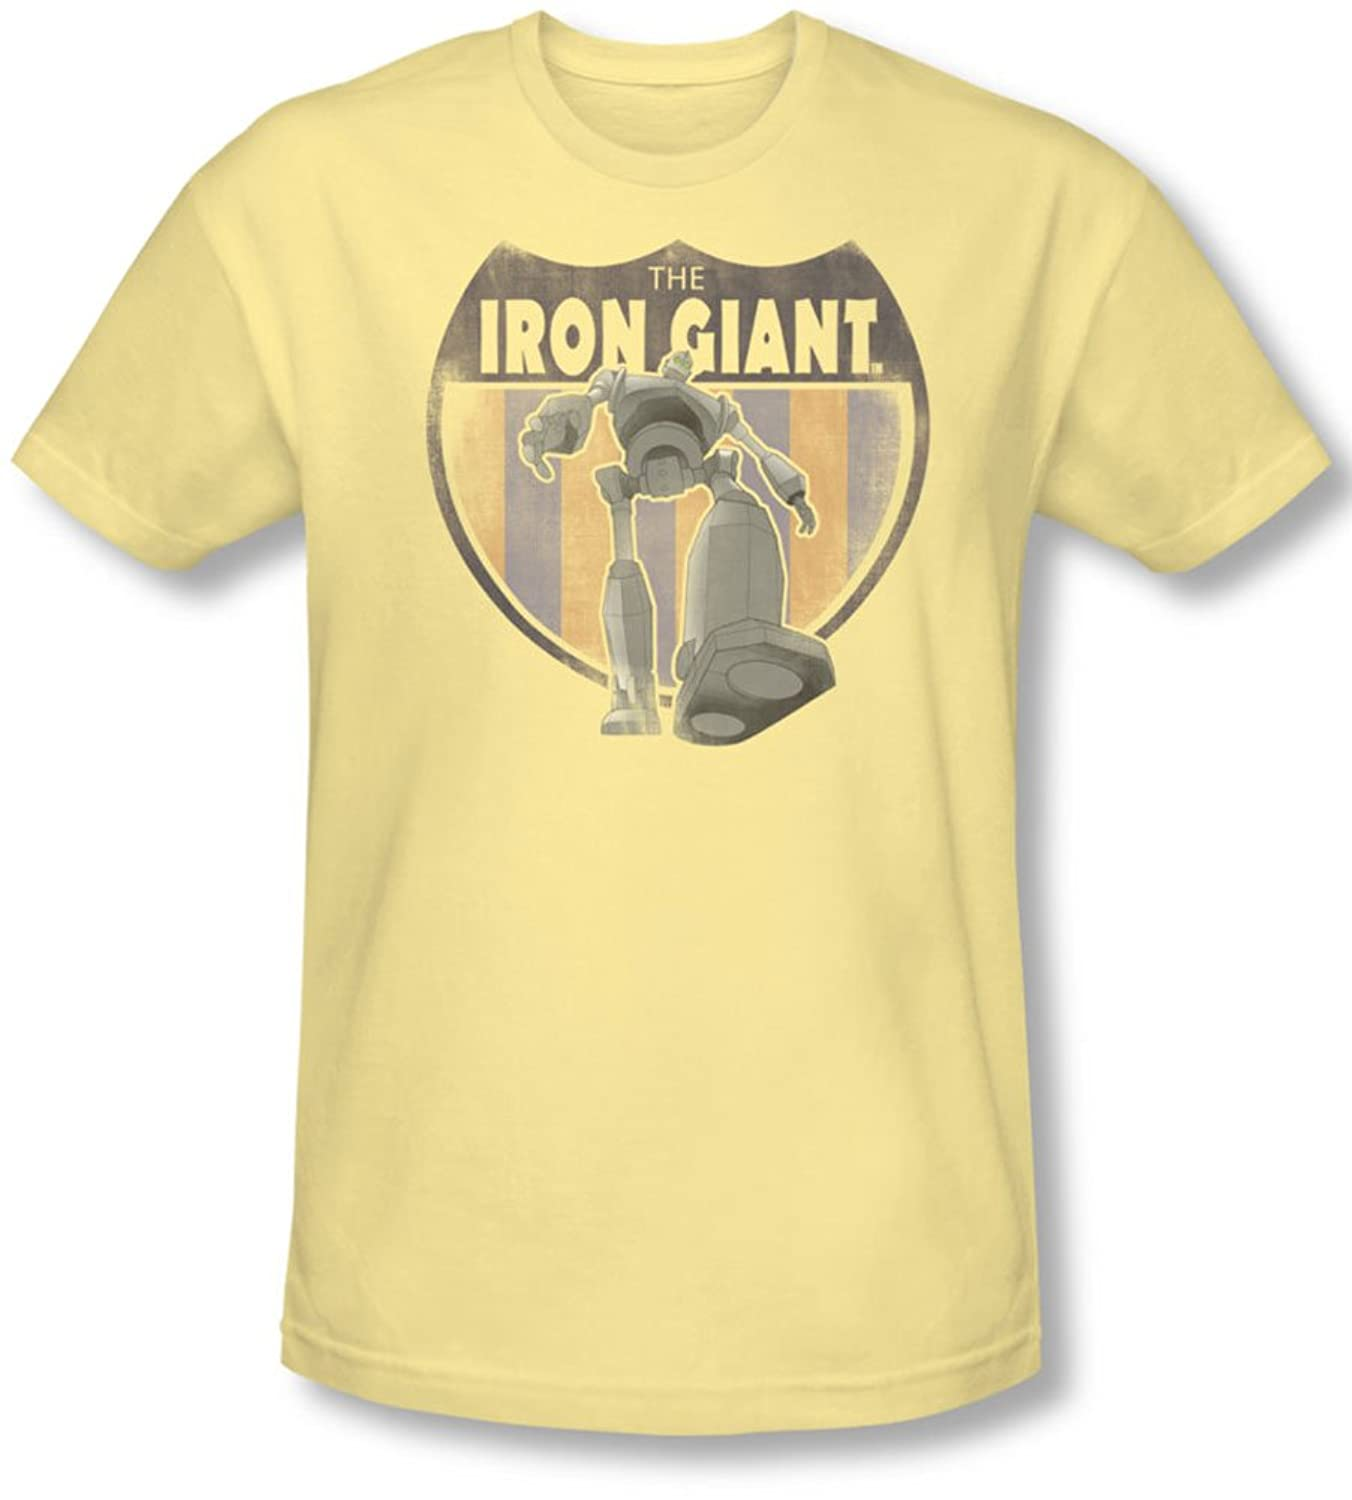 Iron Giant - Mens Patch T-Shirt In Banana